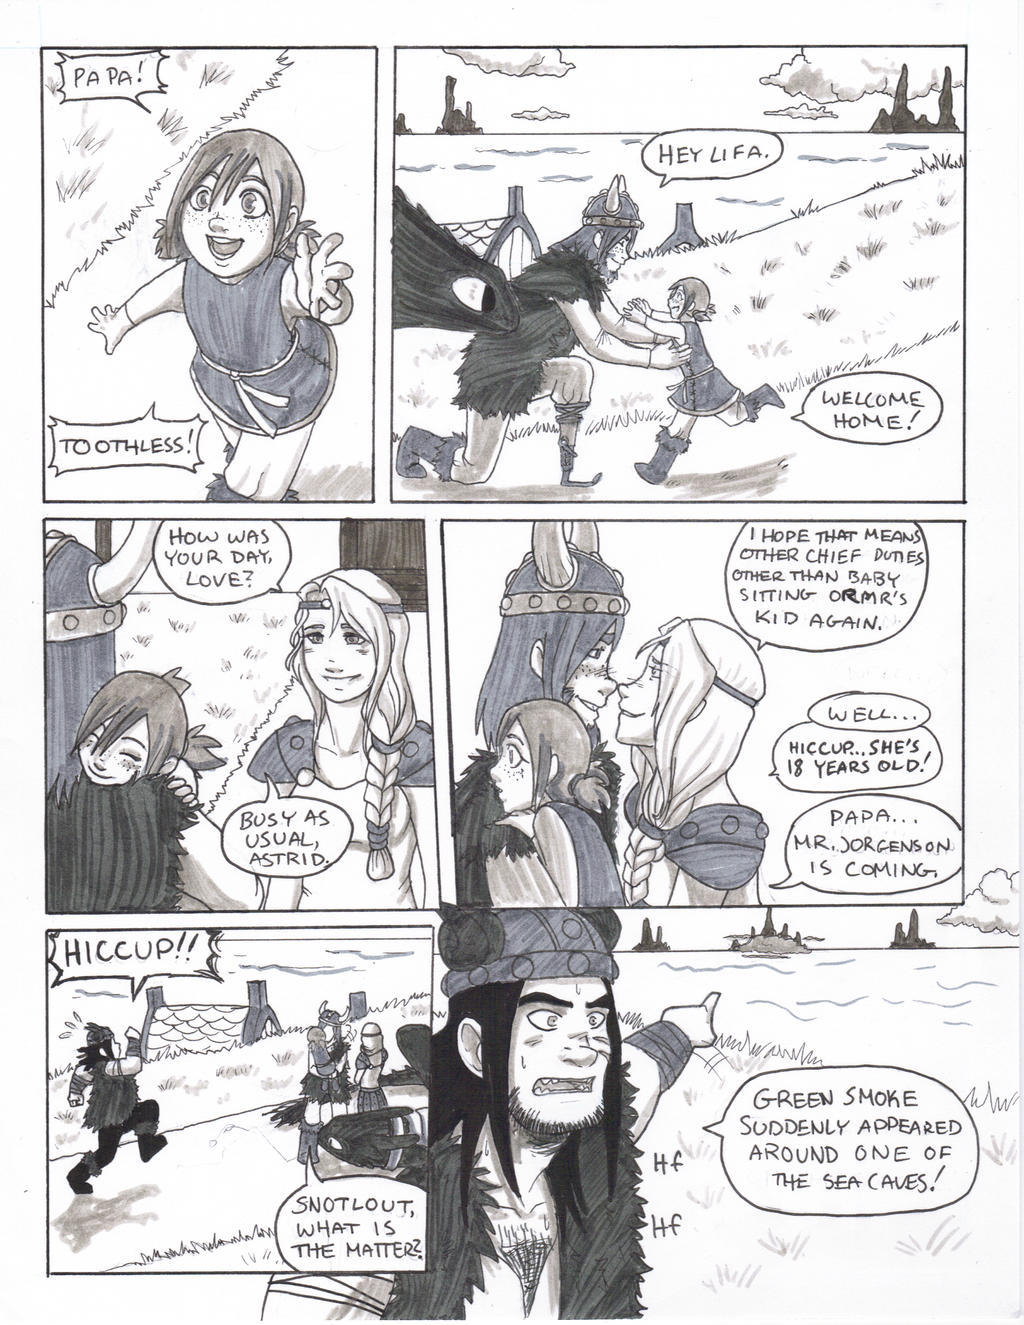 Httyd irethvespera fable 28 by yamilink on deviantart httyd irethvespera fable 28 by yamilink ccuart Image collections